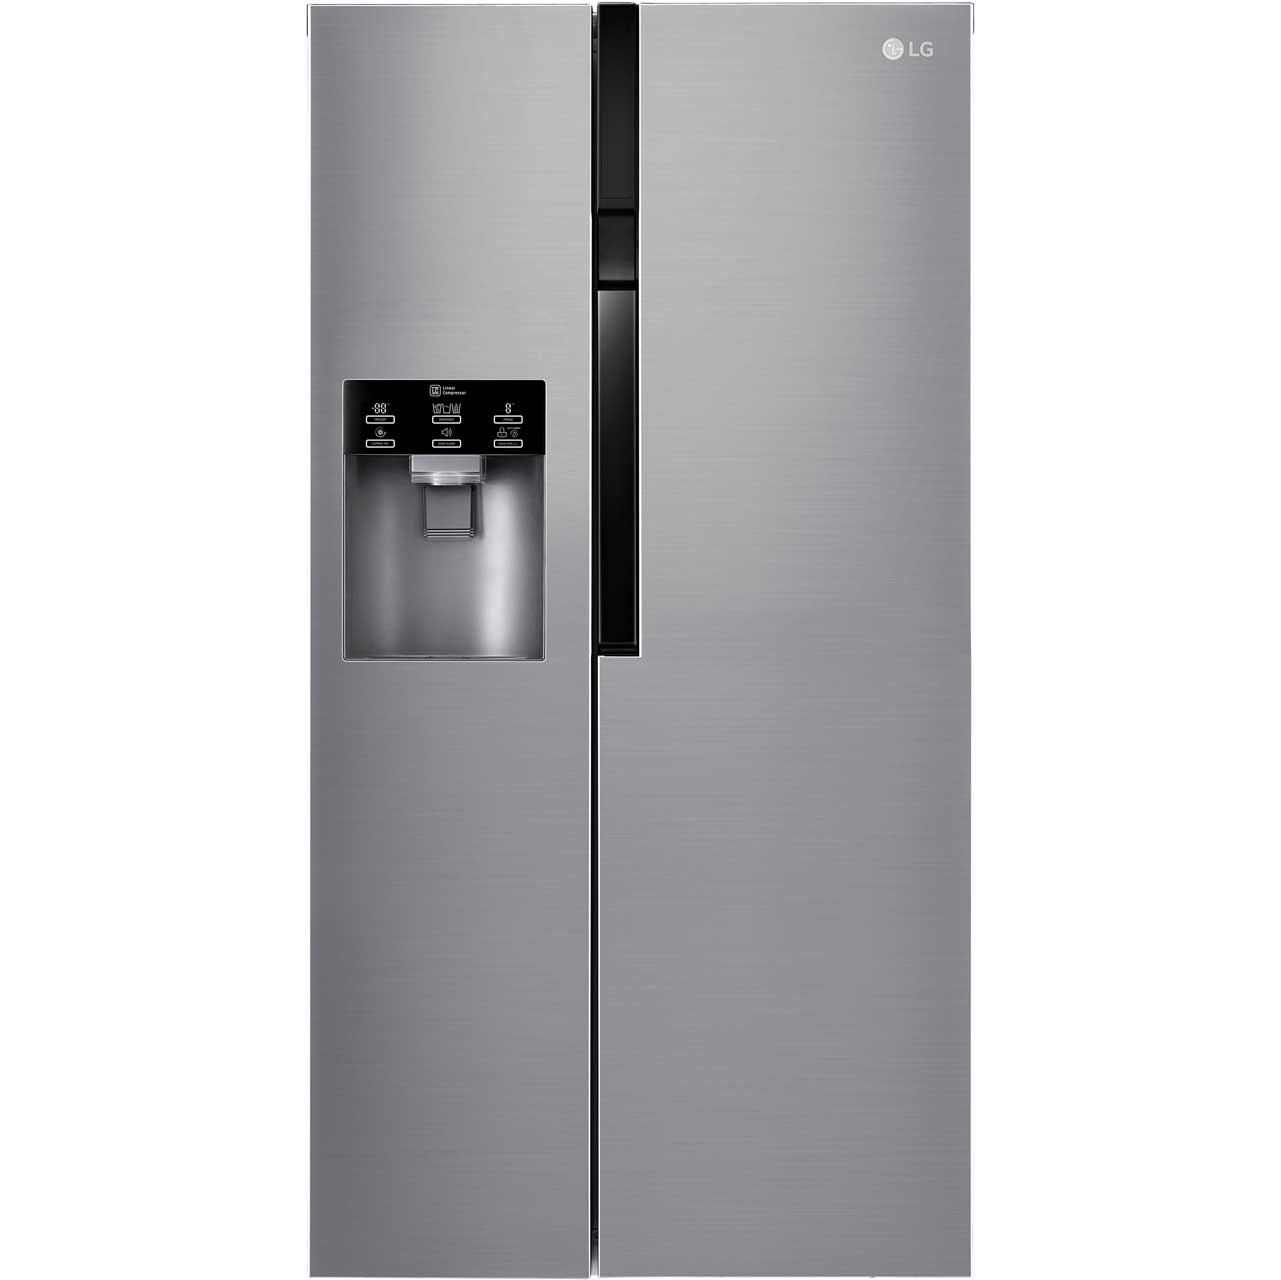 LG GSL561PZUZ Free Standing American Fridge Freezer in Stainless Steel